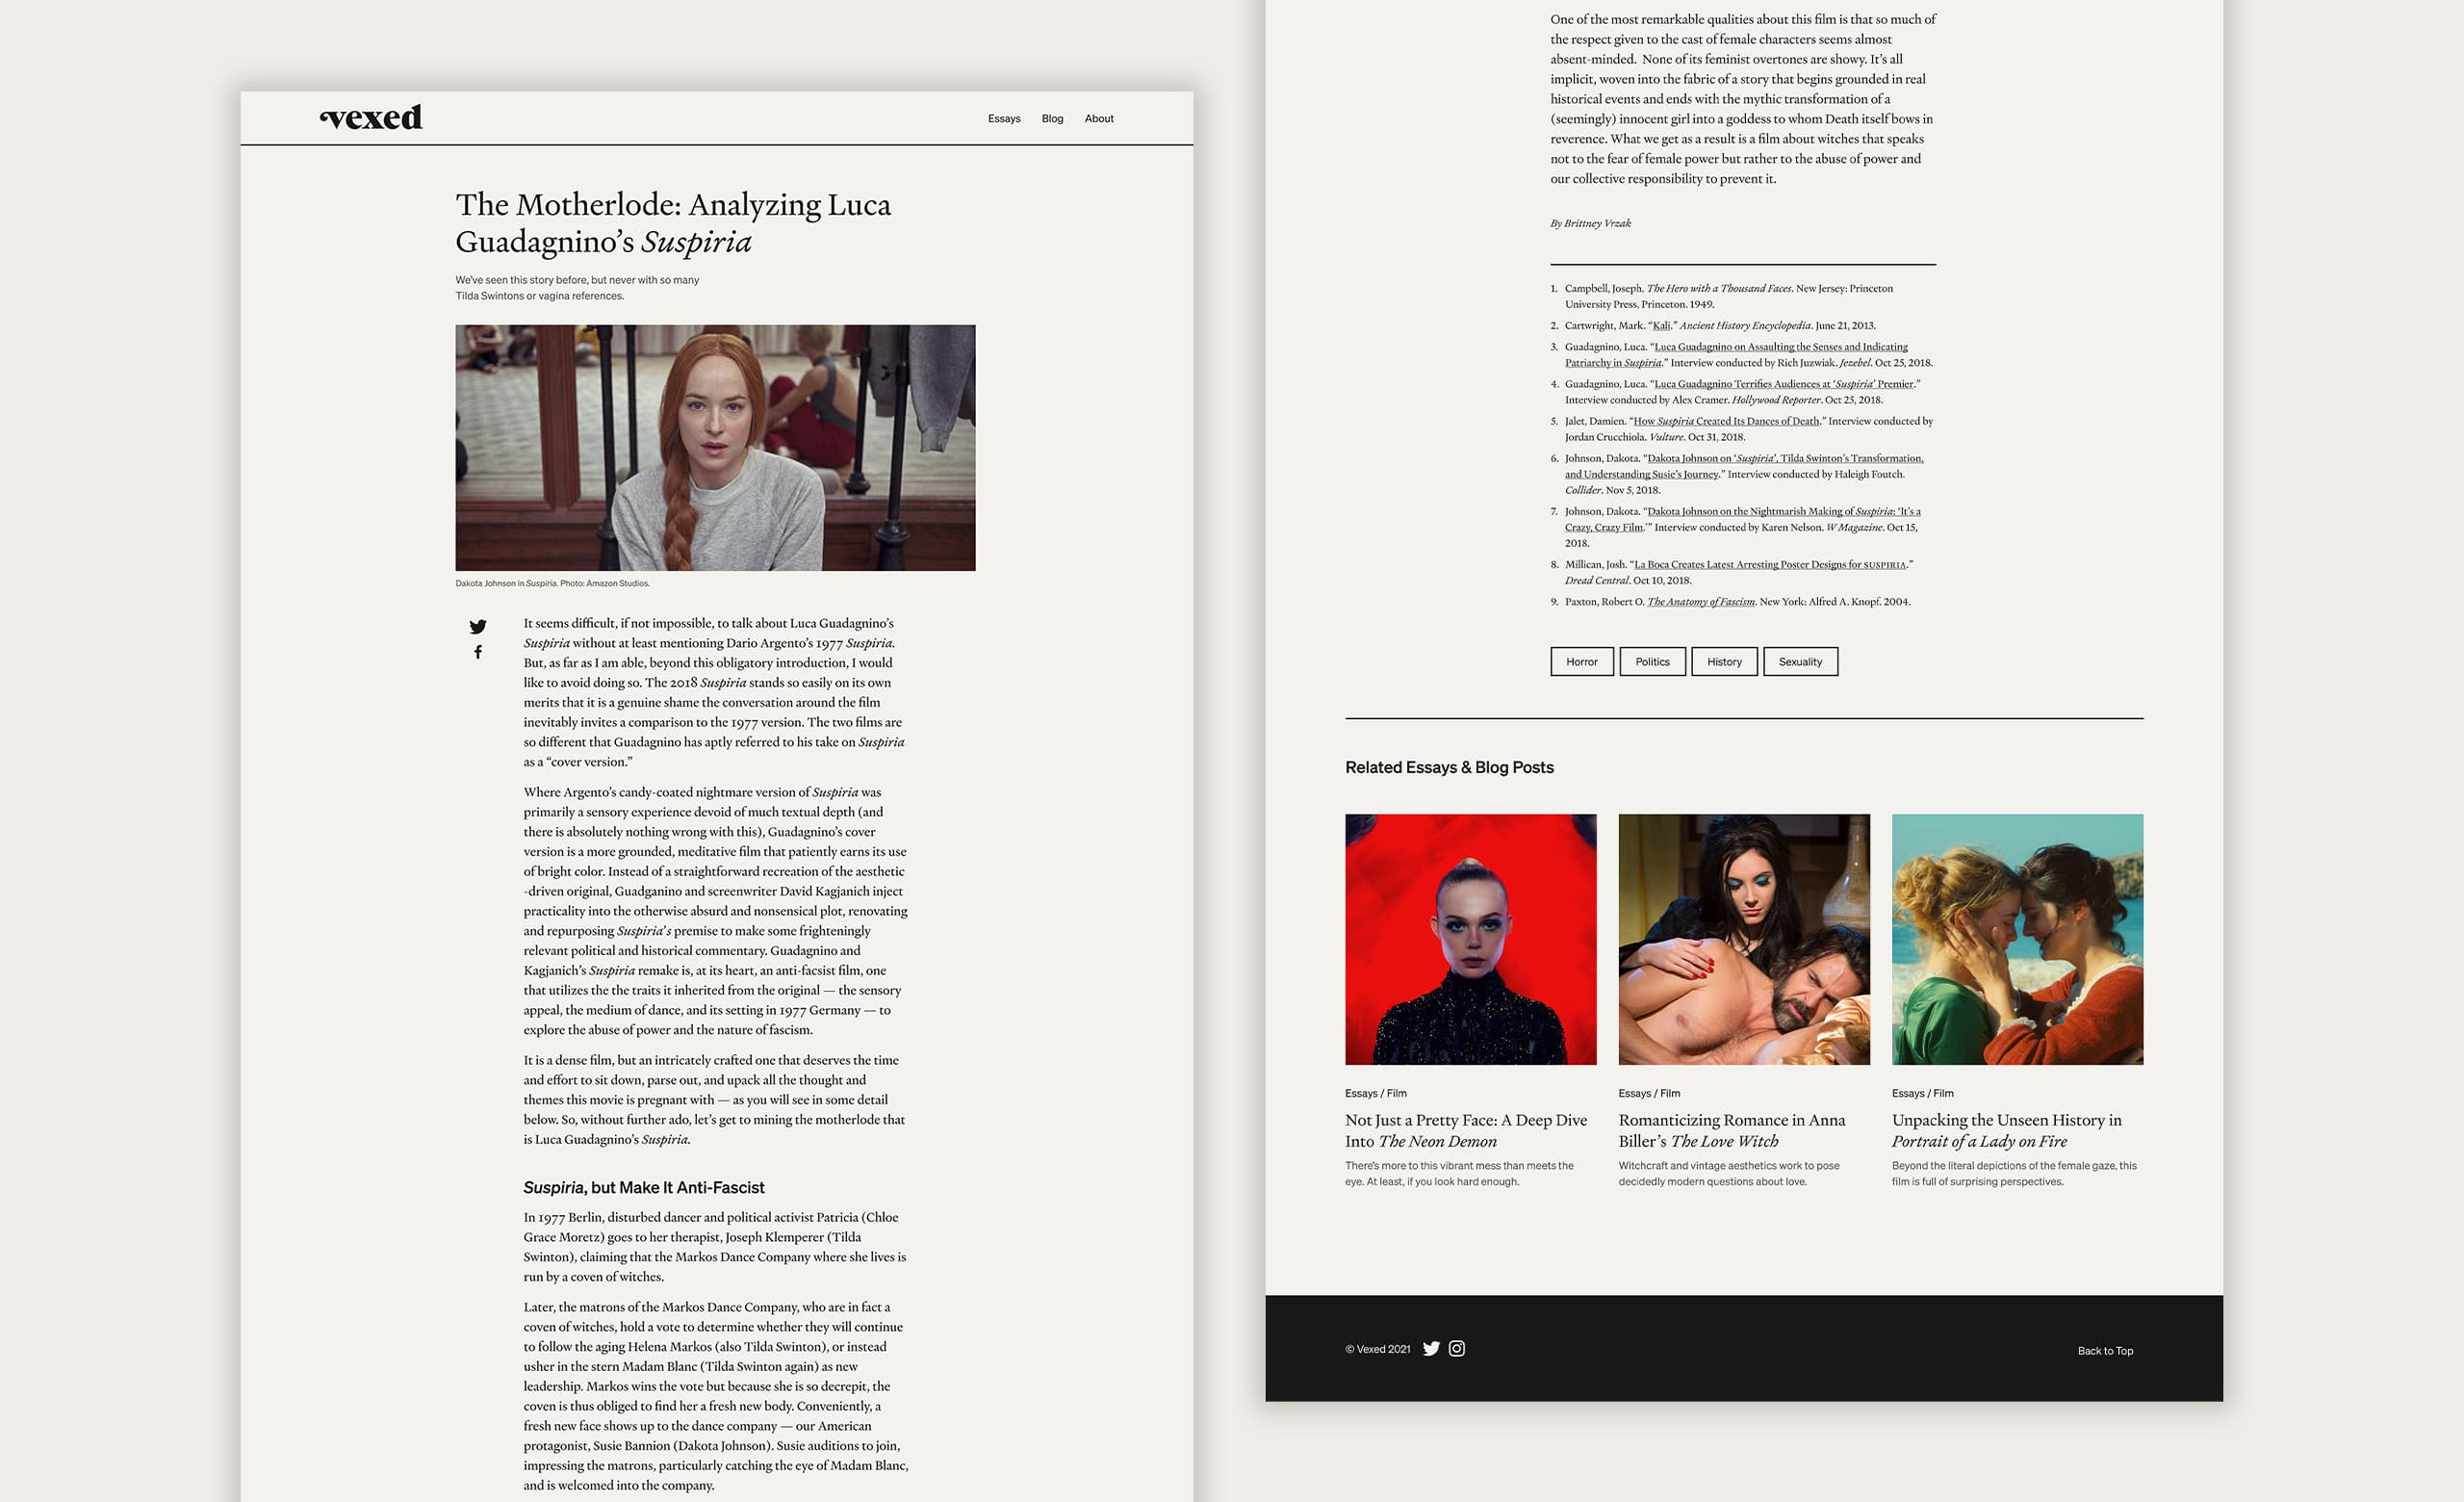 An example of a desktop essay page on the Vexed website.